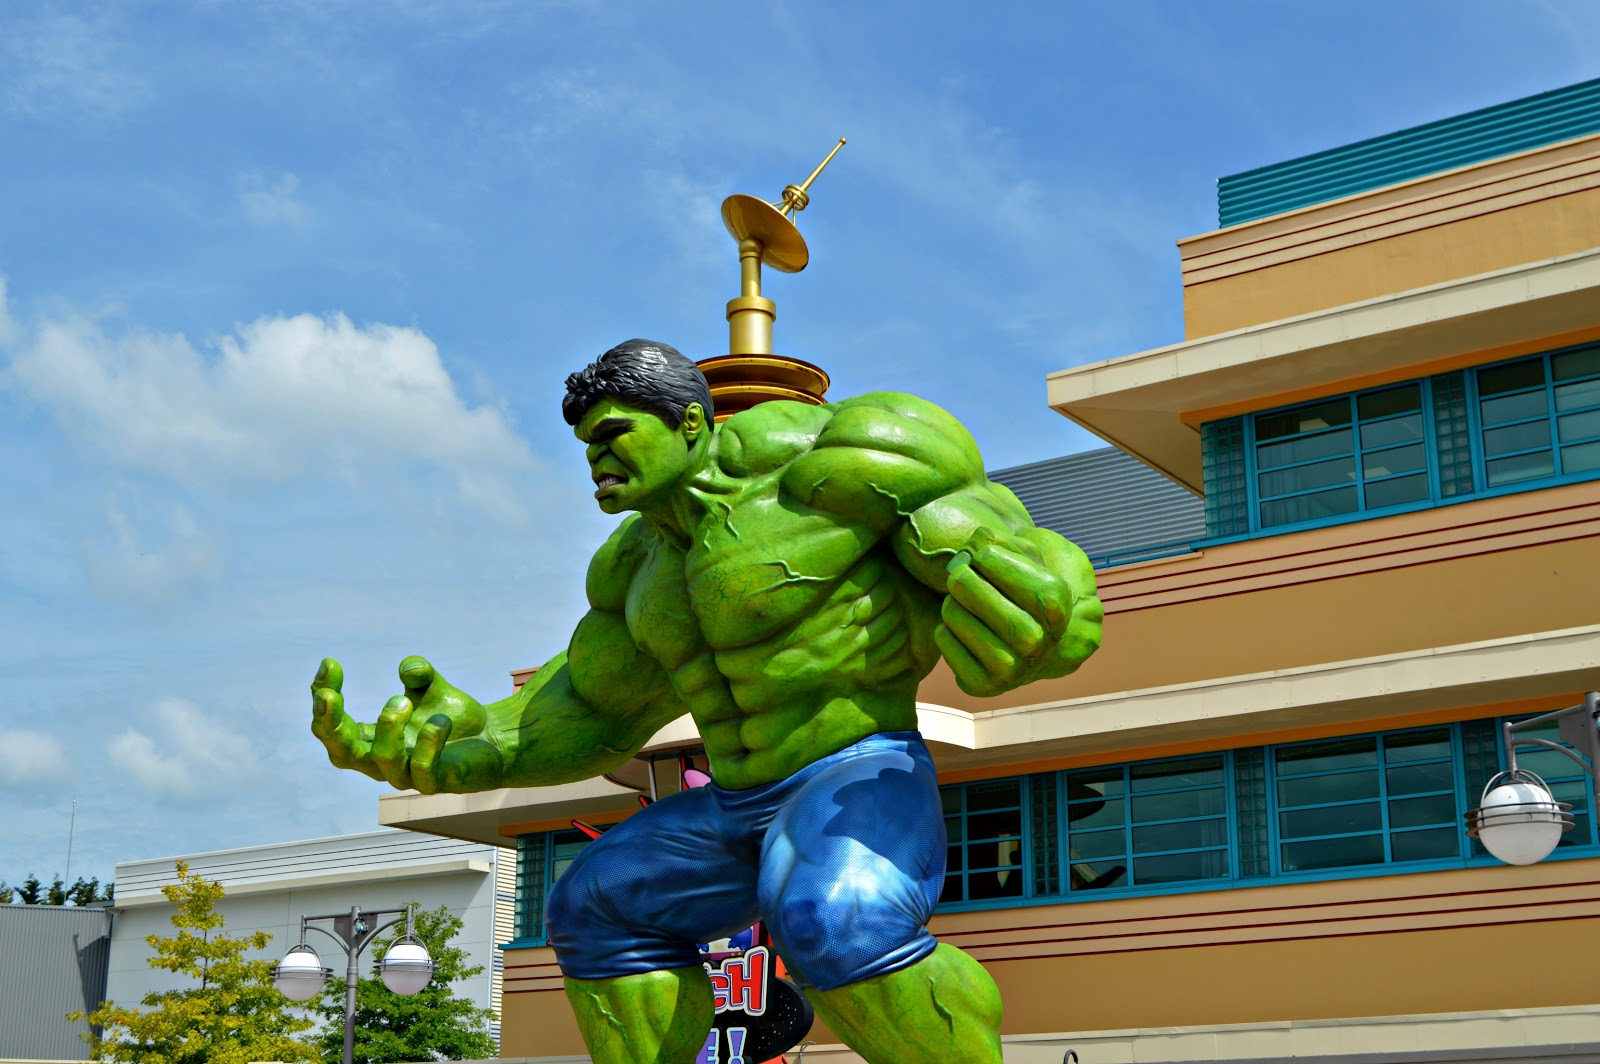 hulk statue in Disneyland Paris